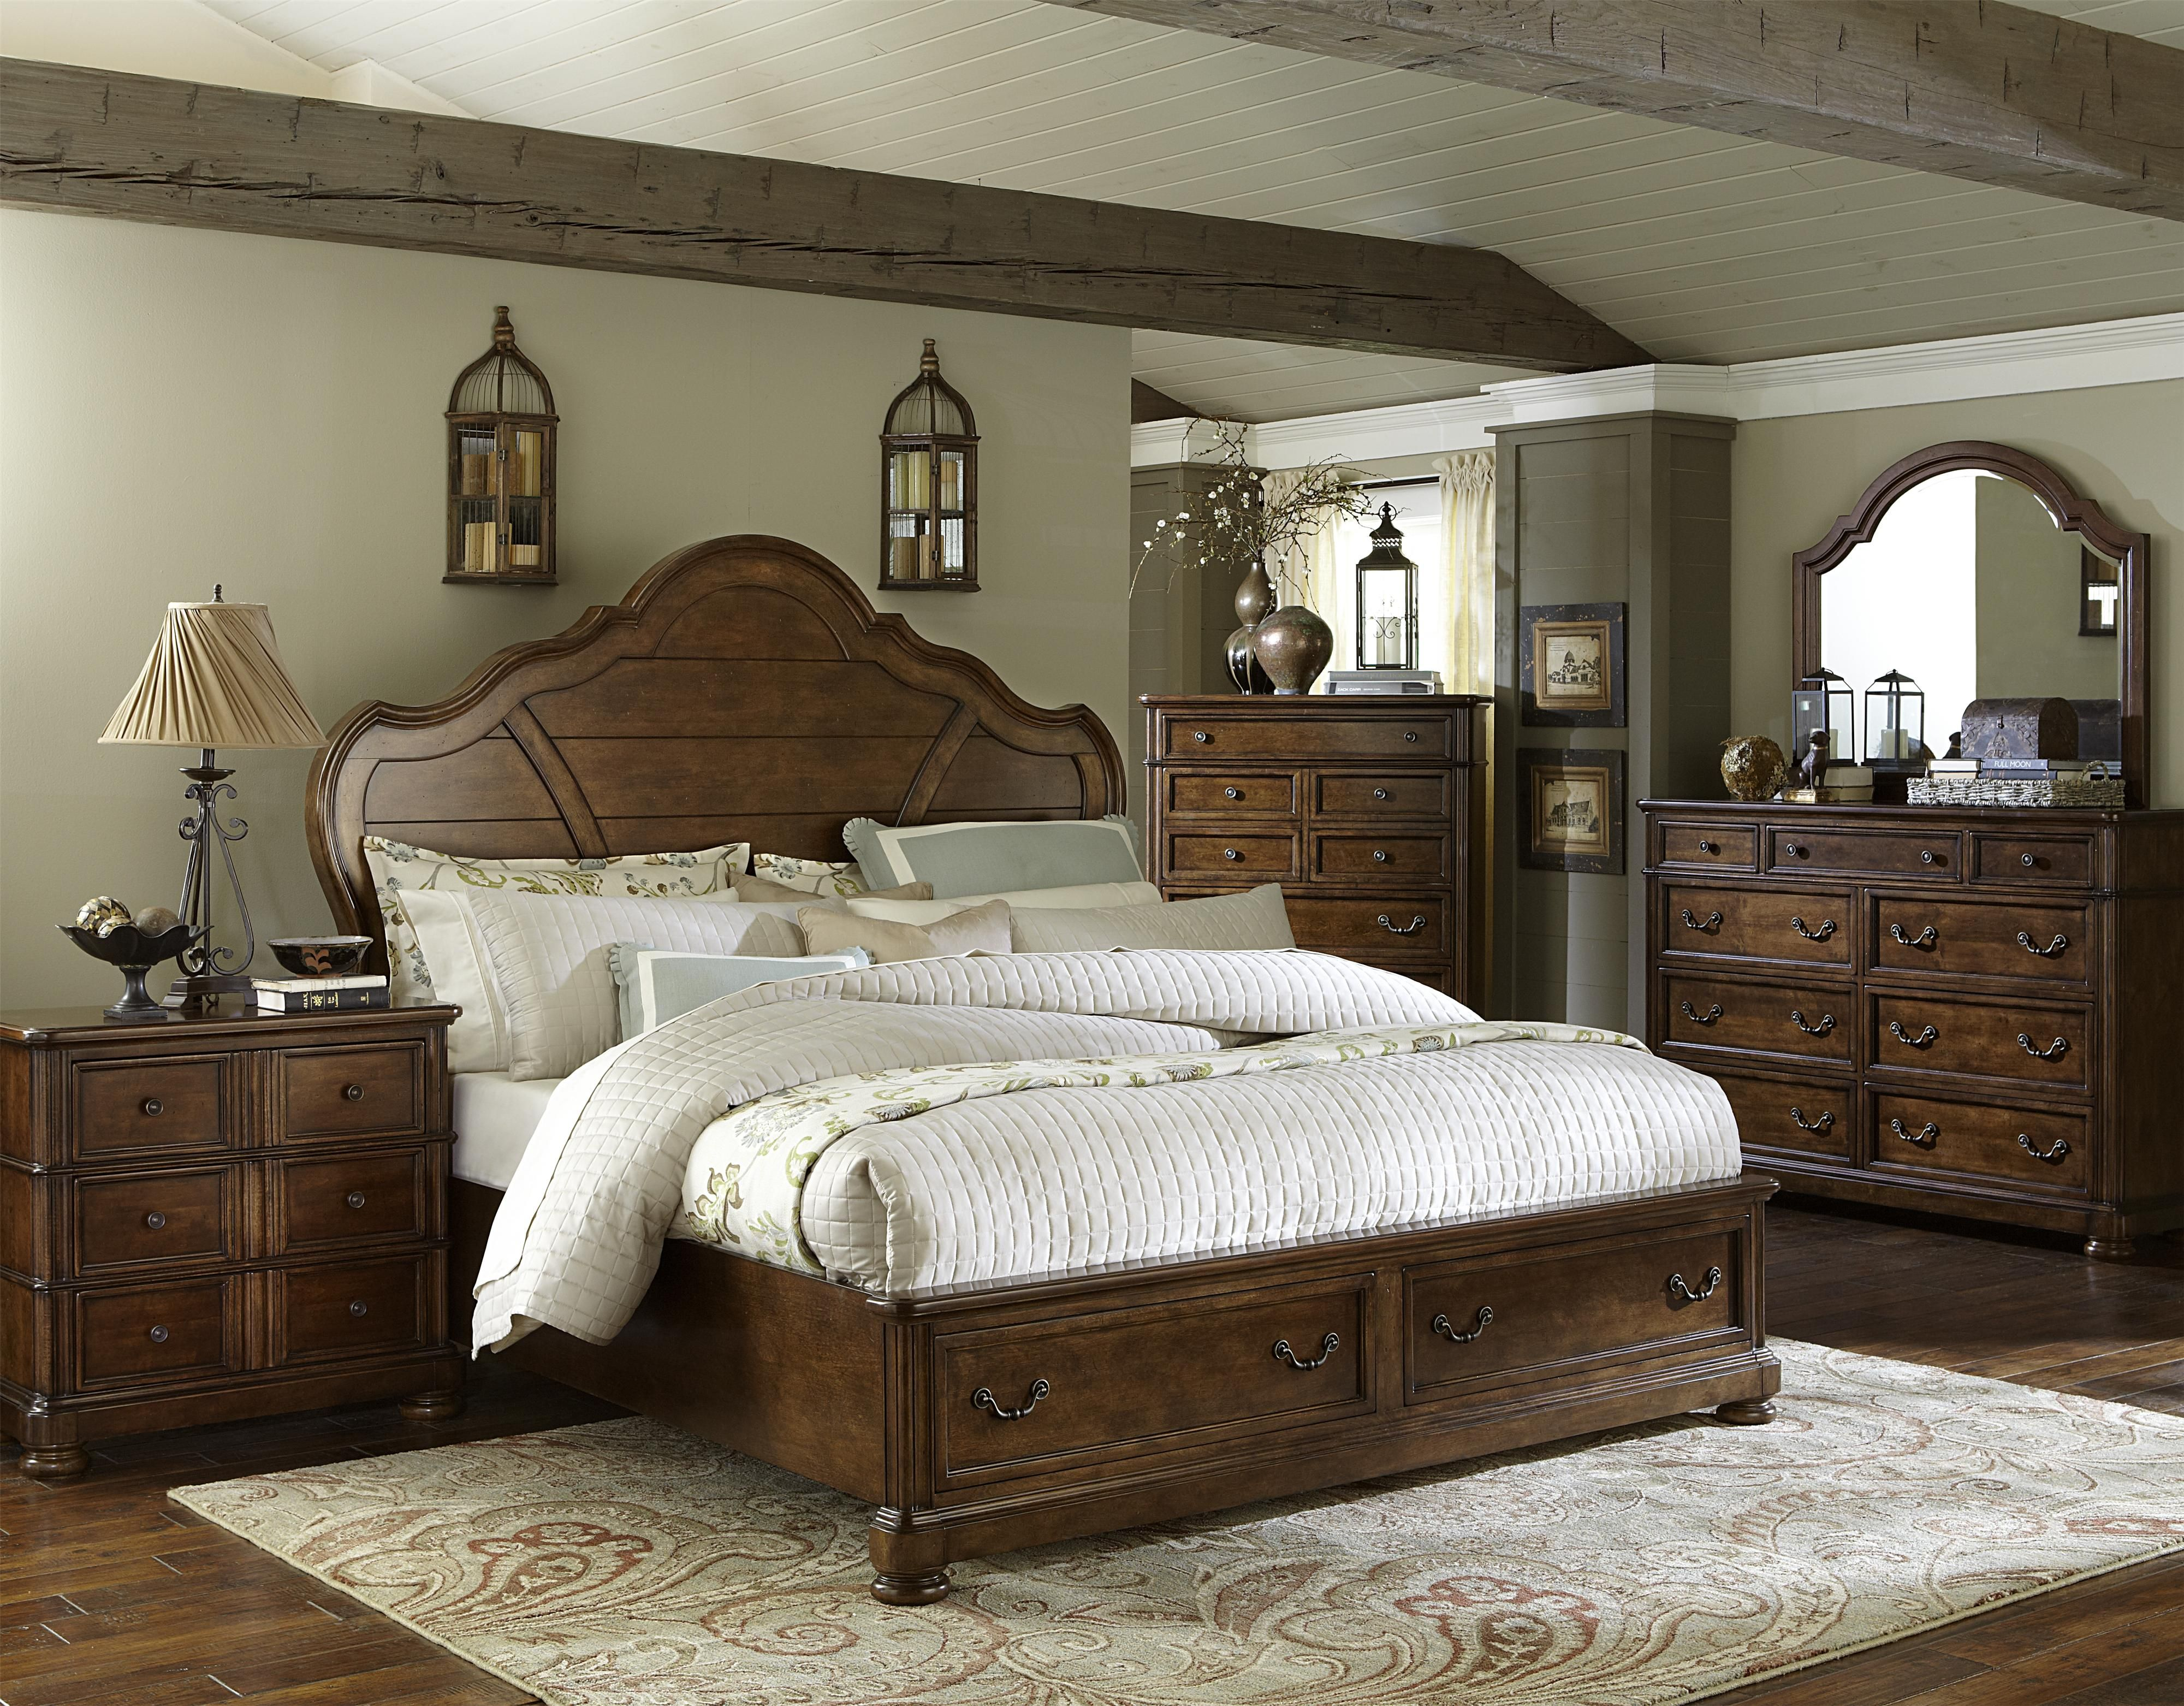 Summer-field bedroom collection is constructed with Poplar Solids, Cathedral Birch, and Short Grain Cherry Wood Veneer in a beautiful, English Leather Finish. Give your bedroom a touch of grace and impeccable style with this collection's custom designed Antique Brass hardware and unique construction.